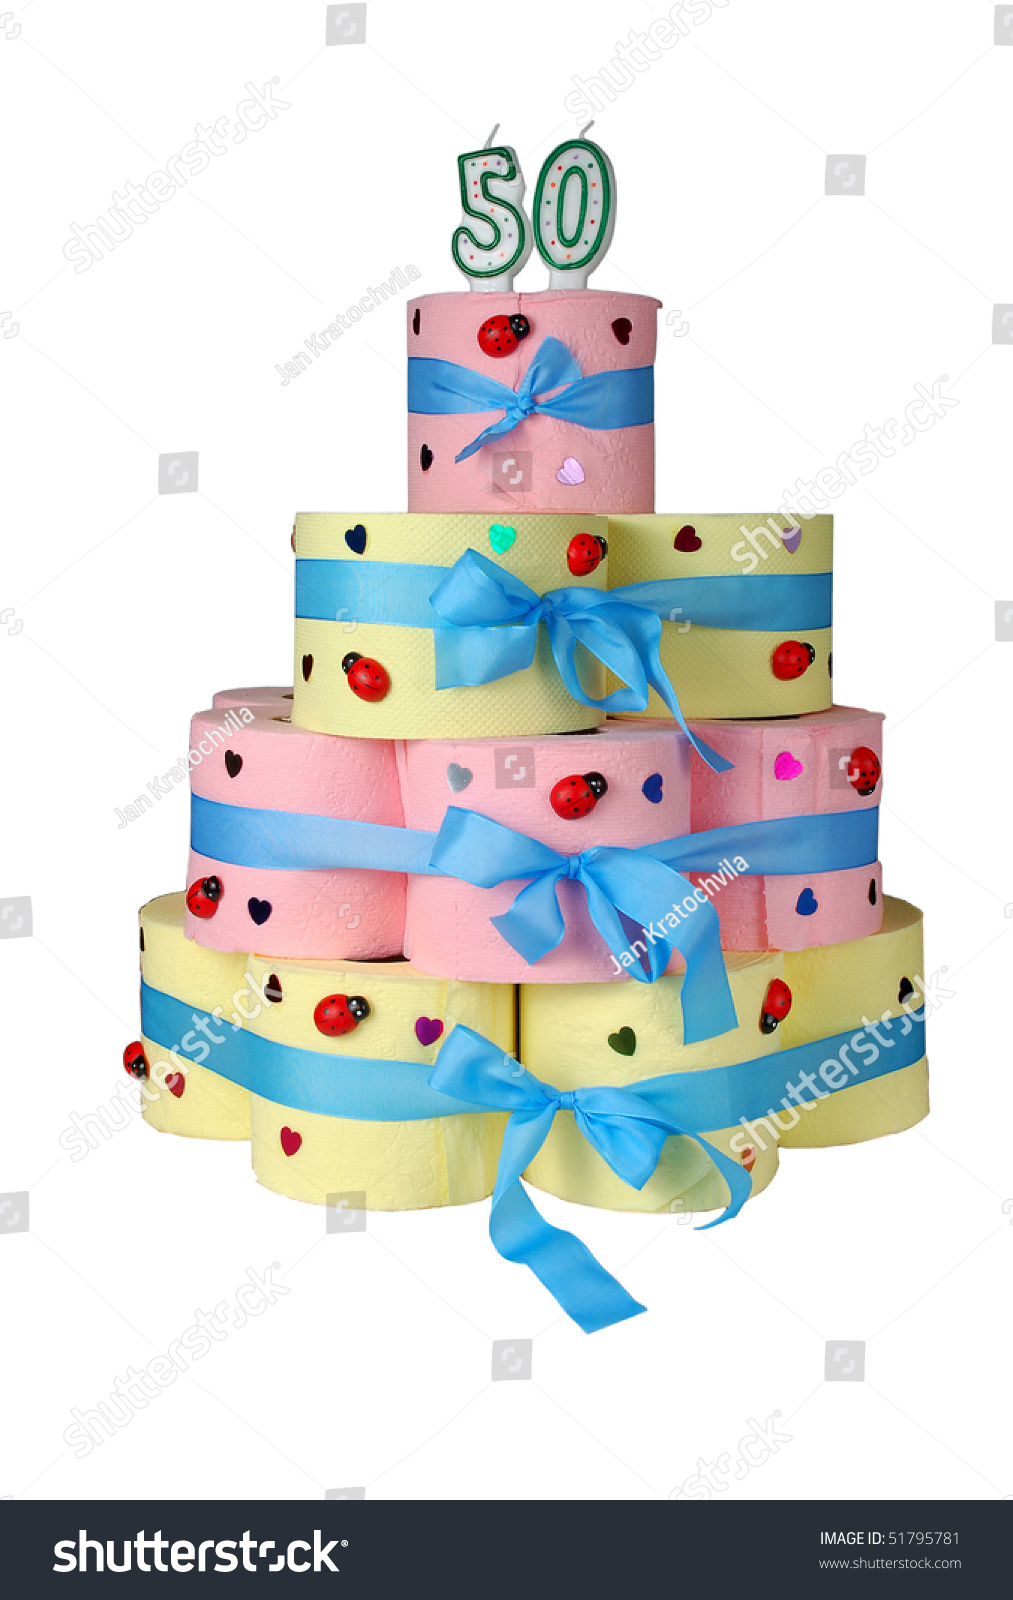 50th Birthday Cake Made Toilet Paper Stock Photo Edit Now 51795781